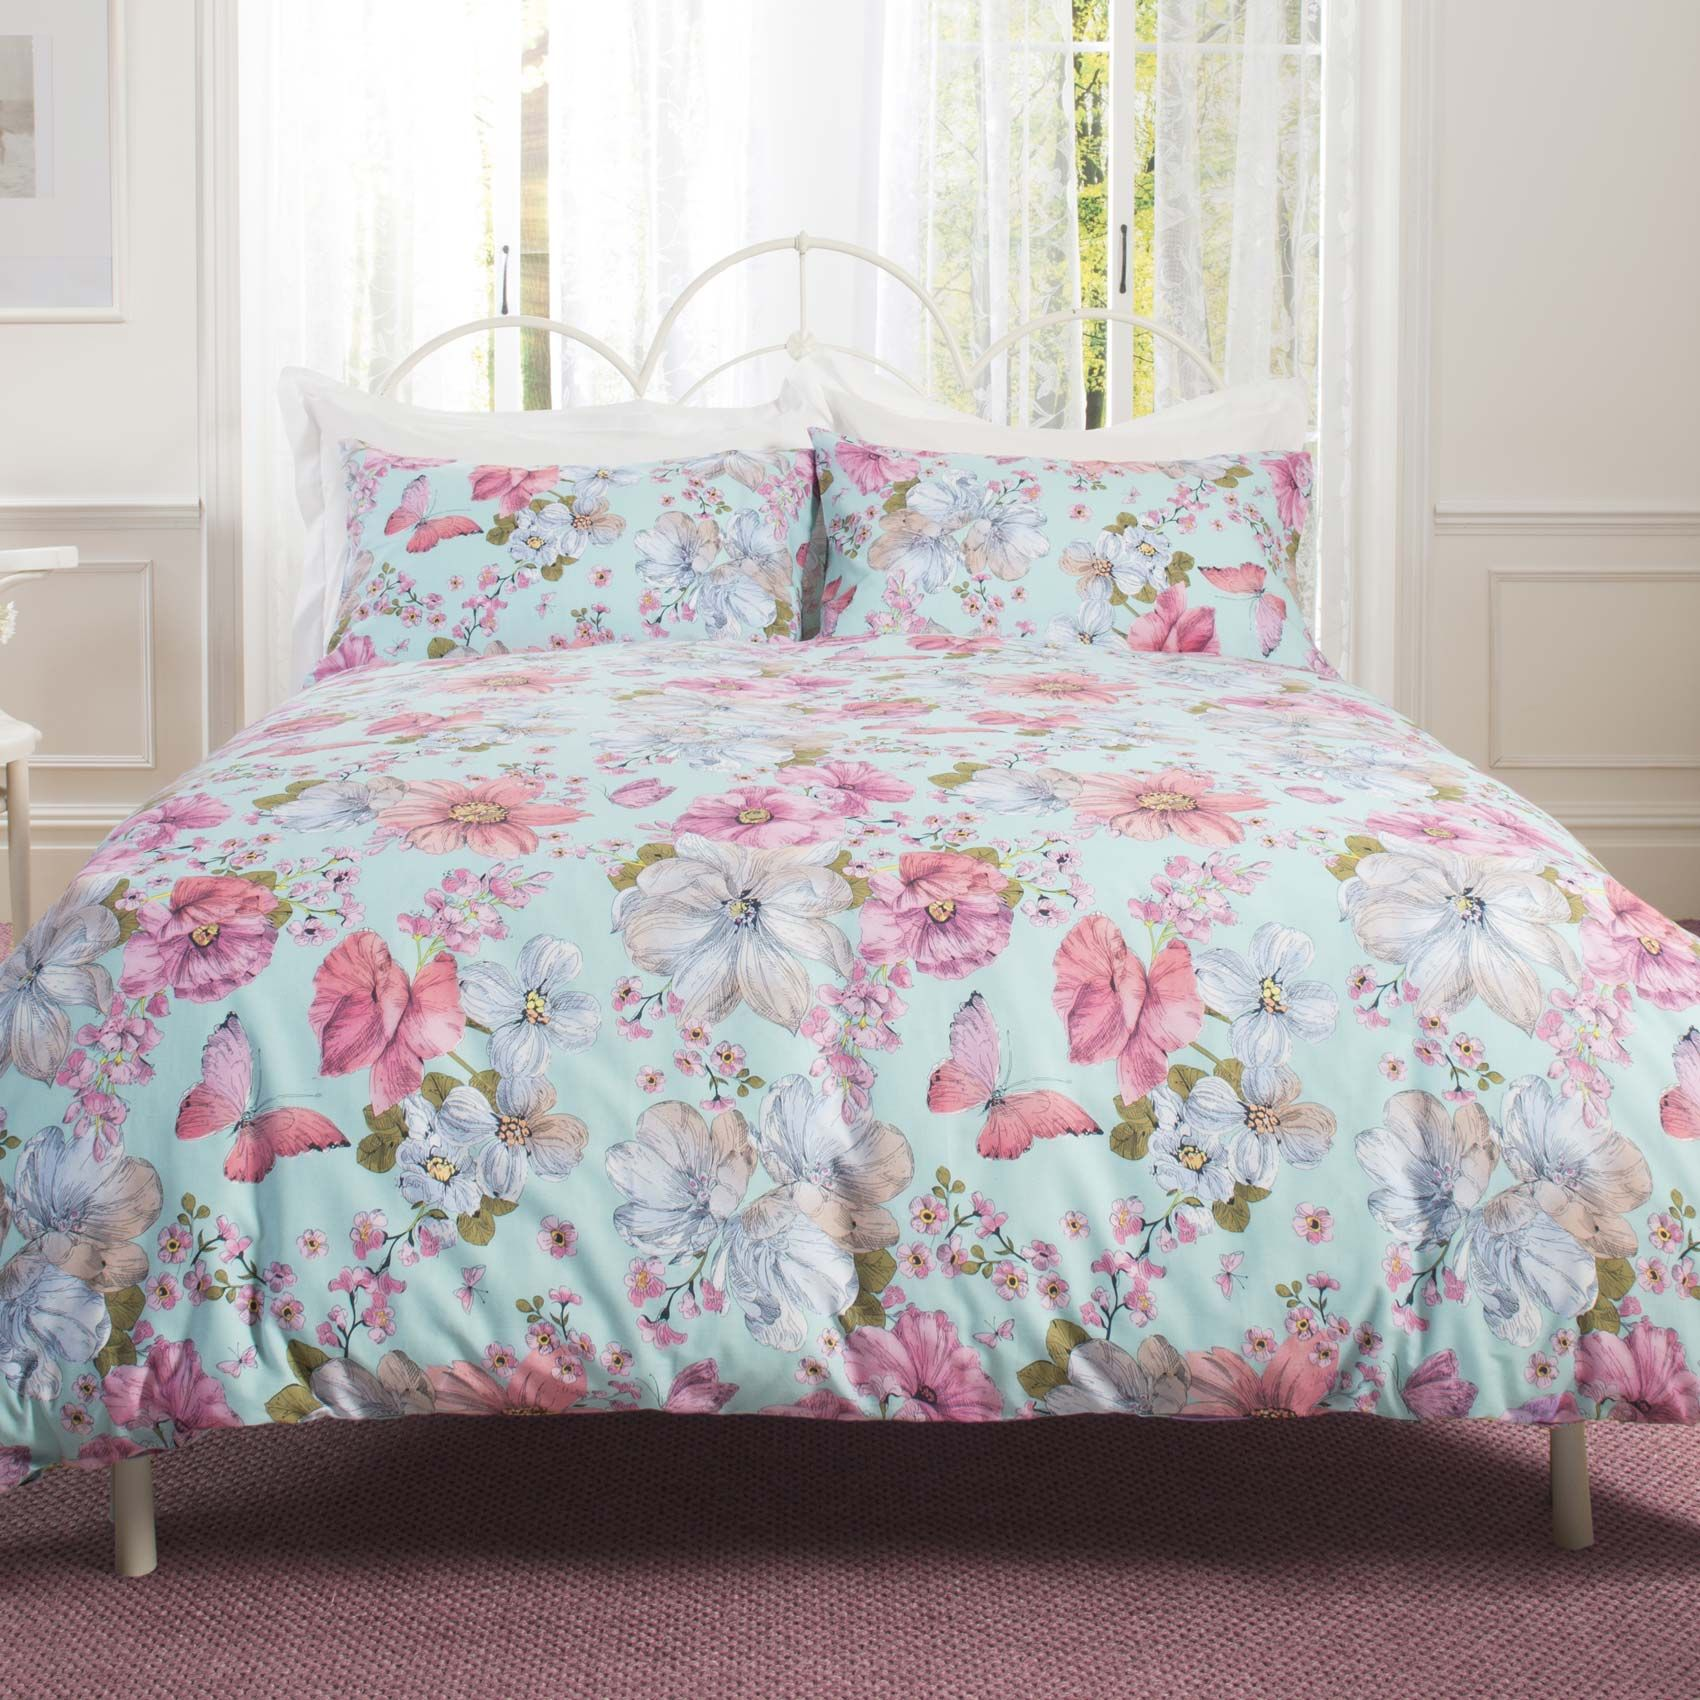 patricia rose ditsy floral duvet cover set  aqua and pink floral  - patricia rose ditsy floral duvet cover set  aqua and pink floral beddingset